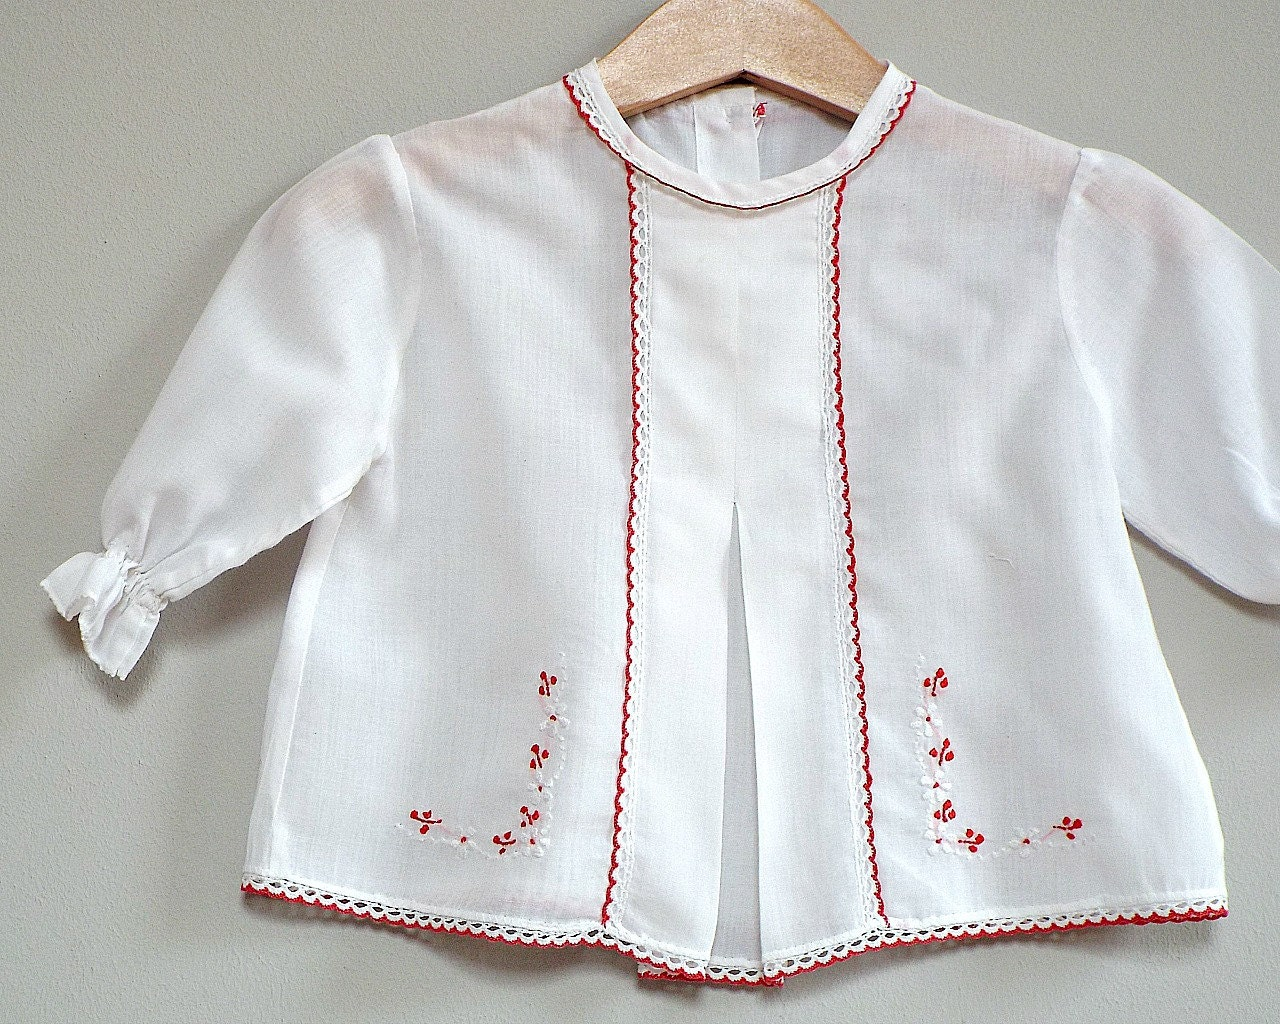 items similar to 1960 clothing vintage 60s baby